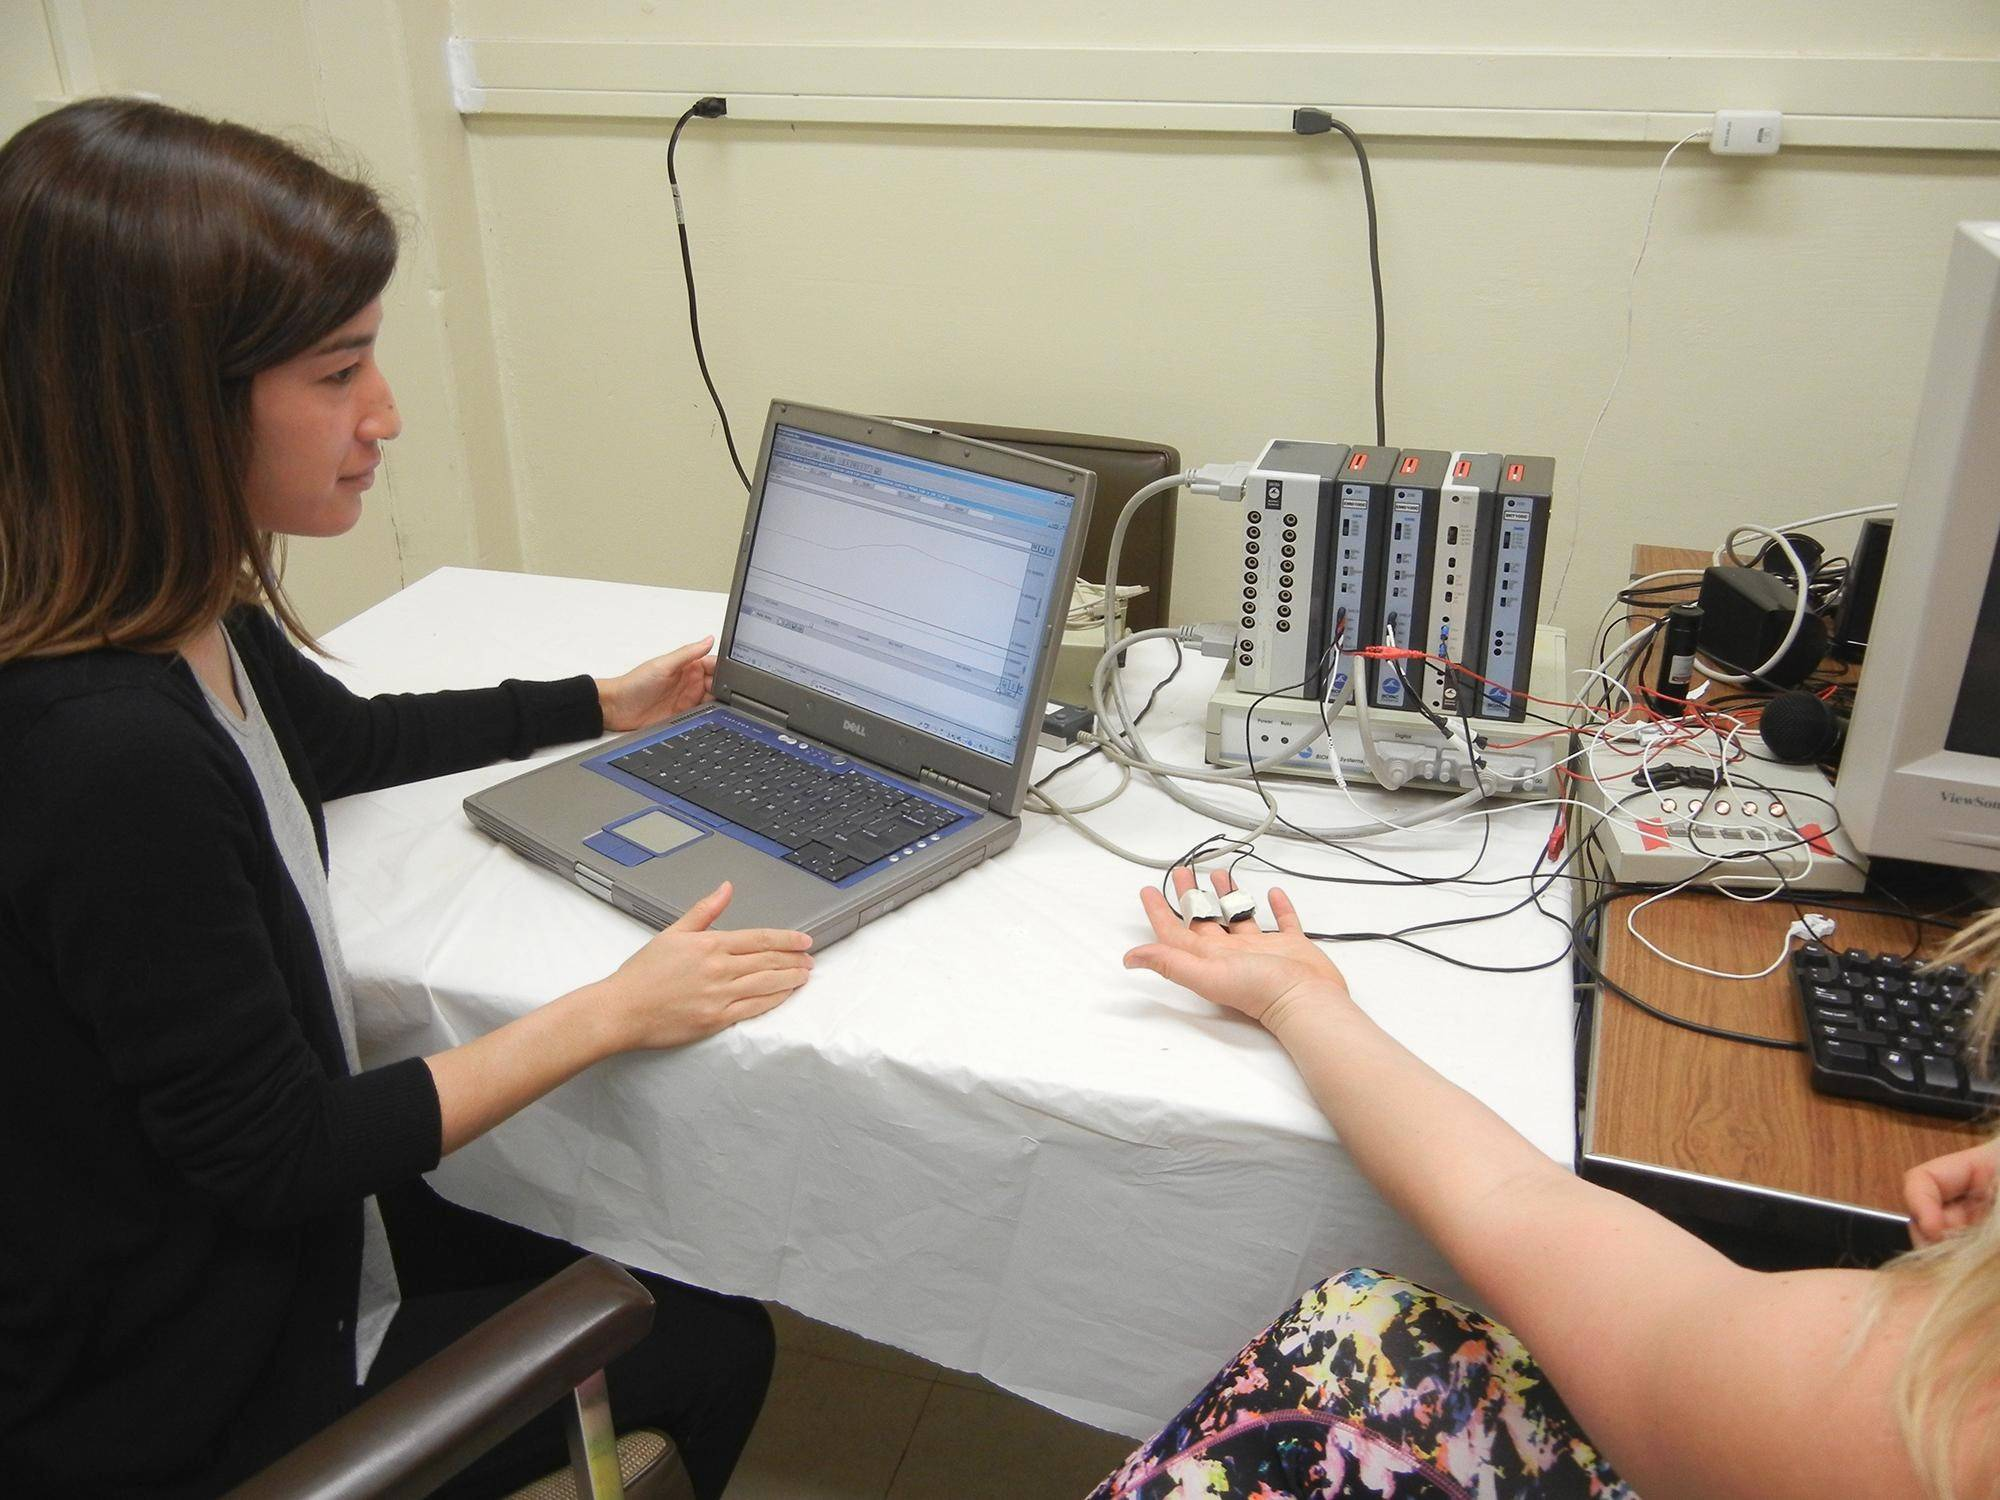 Ph.D student Miren Edelstein hooked up electrodes to volunteers' hands to verify that their aversion to certain sounds was real.